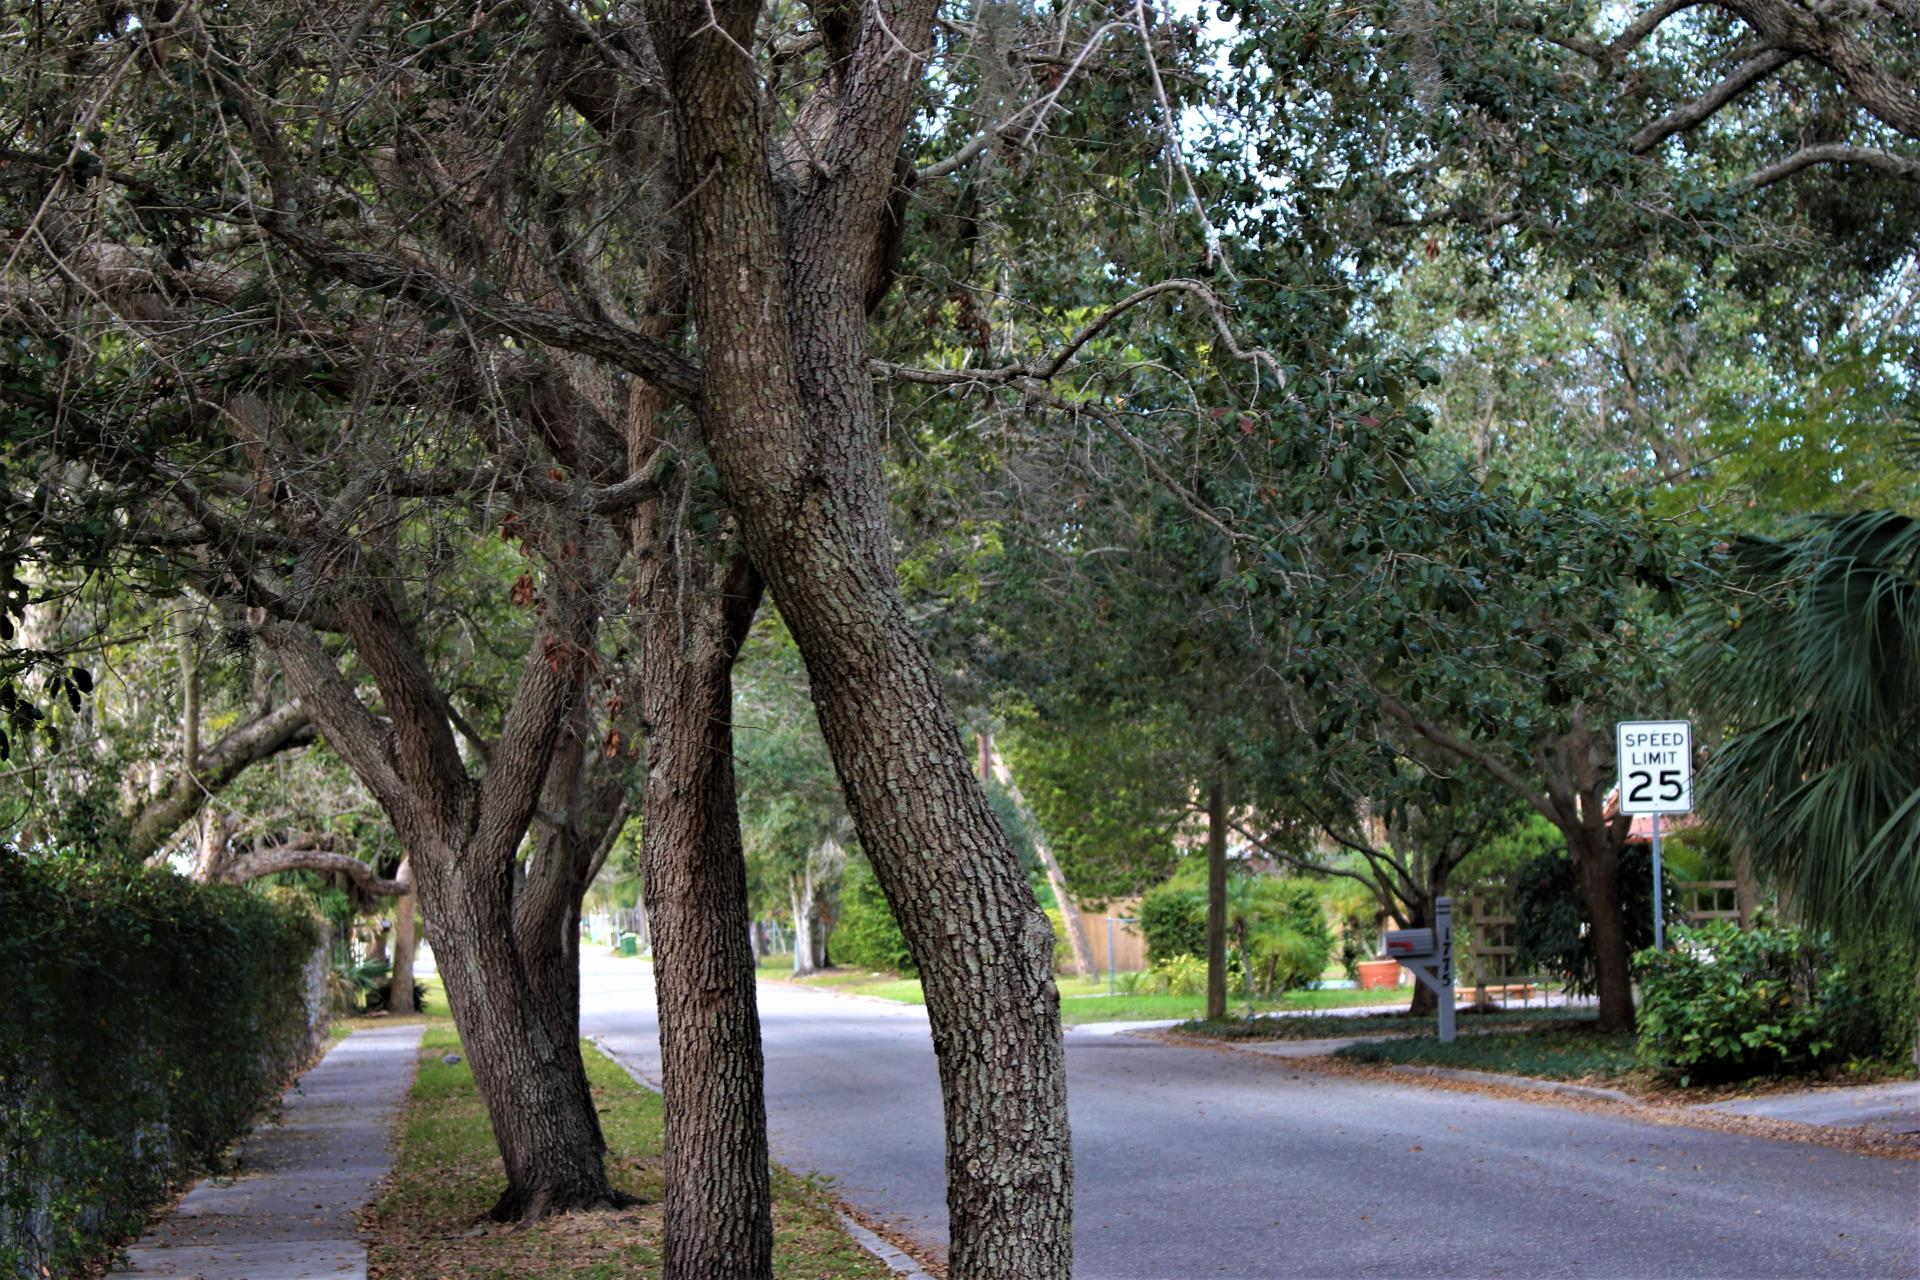 Tree lined street in the City of Sarasota.